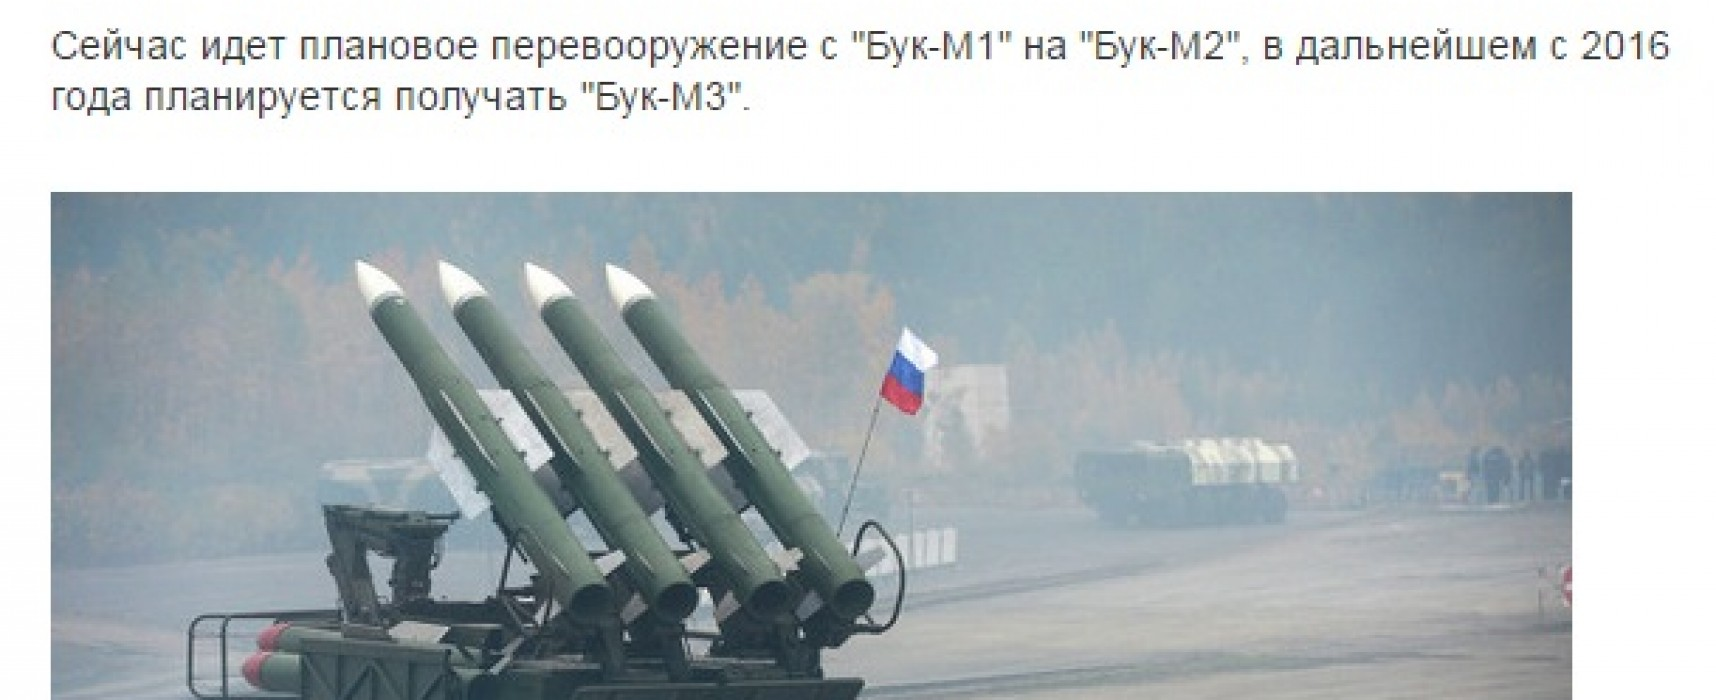 Russia, the BUK-M1 Missile, and MH17